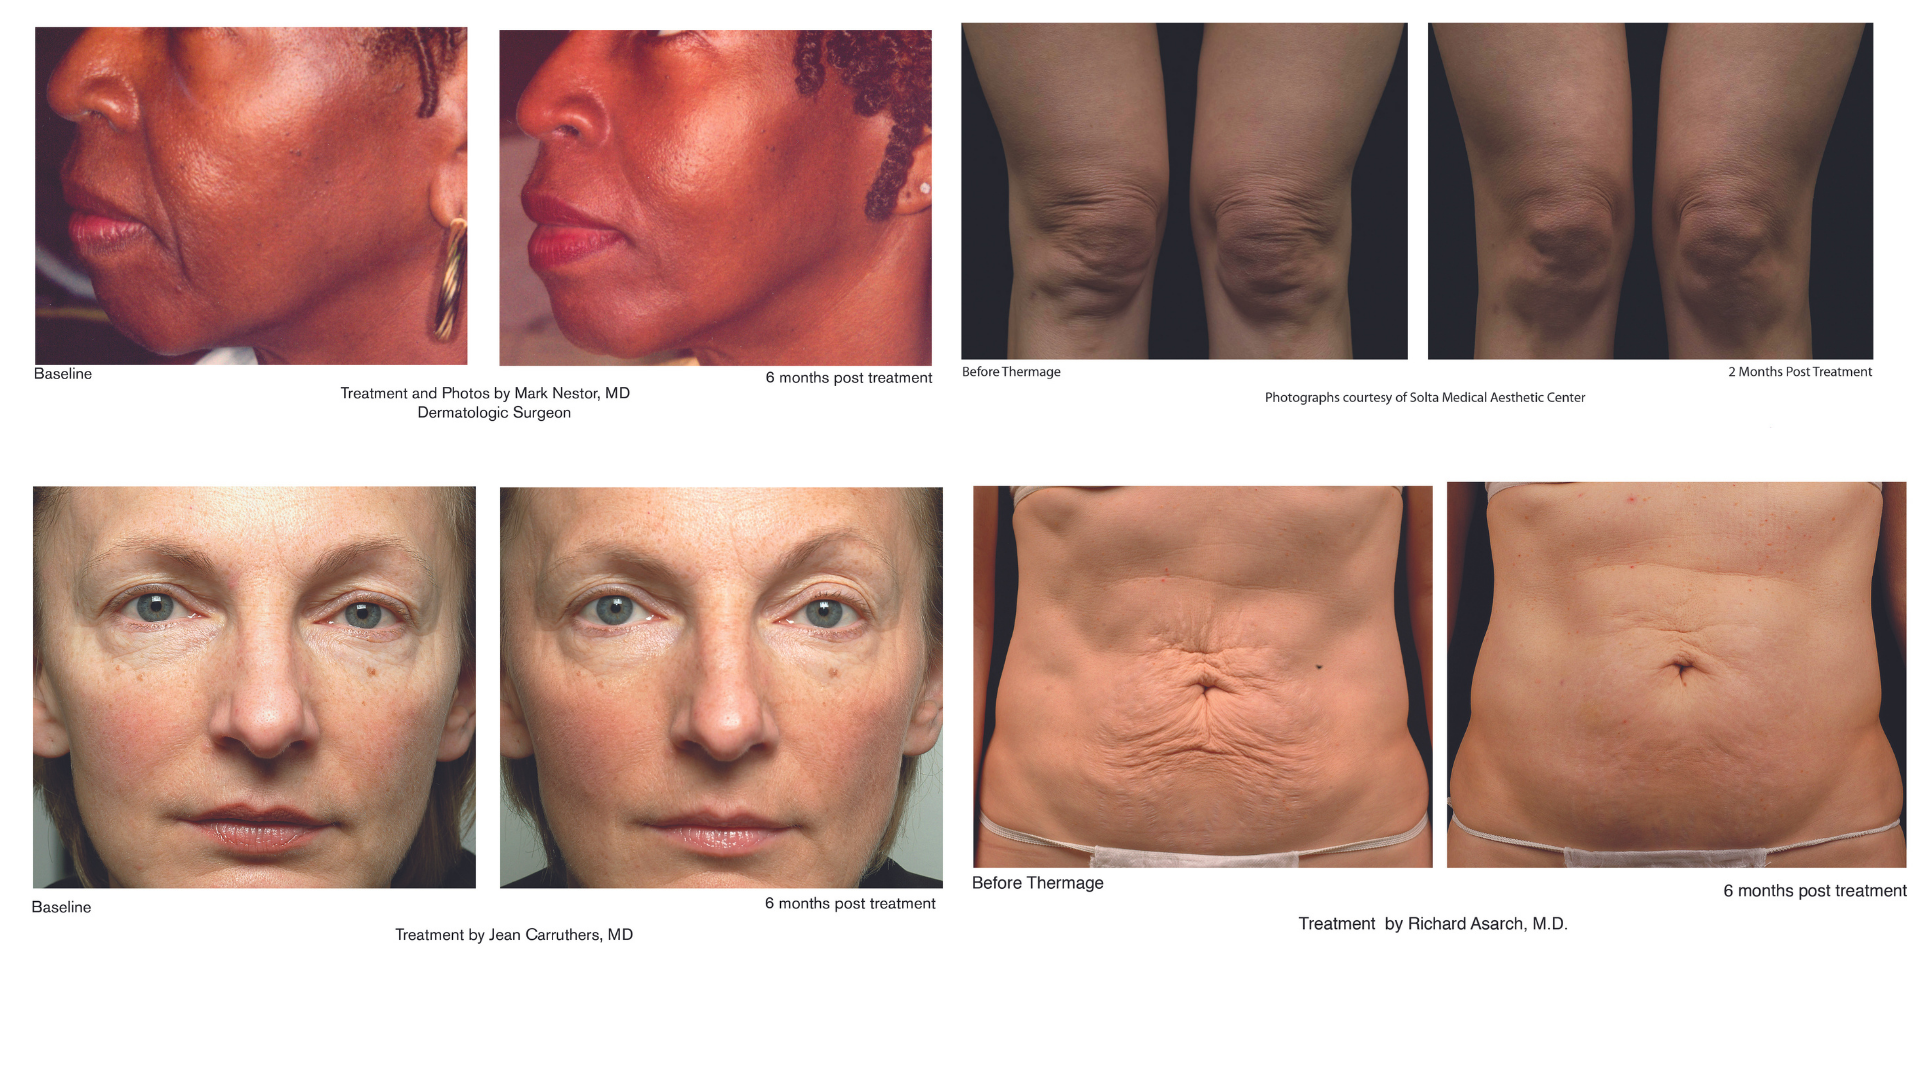 thermage before and after photos